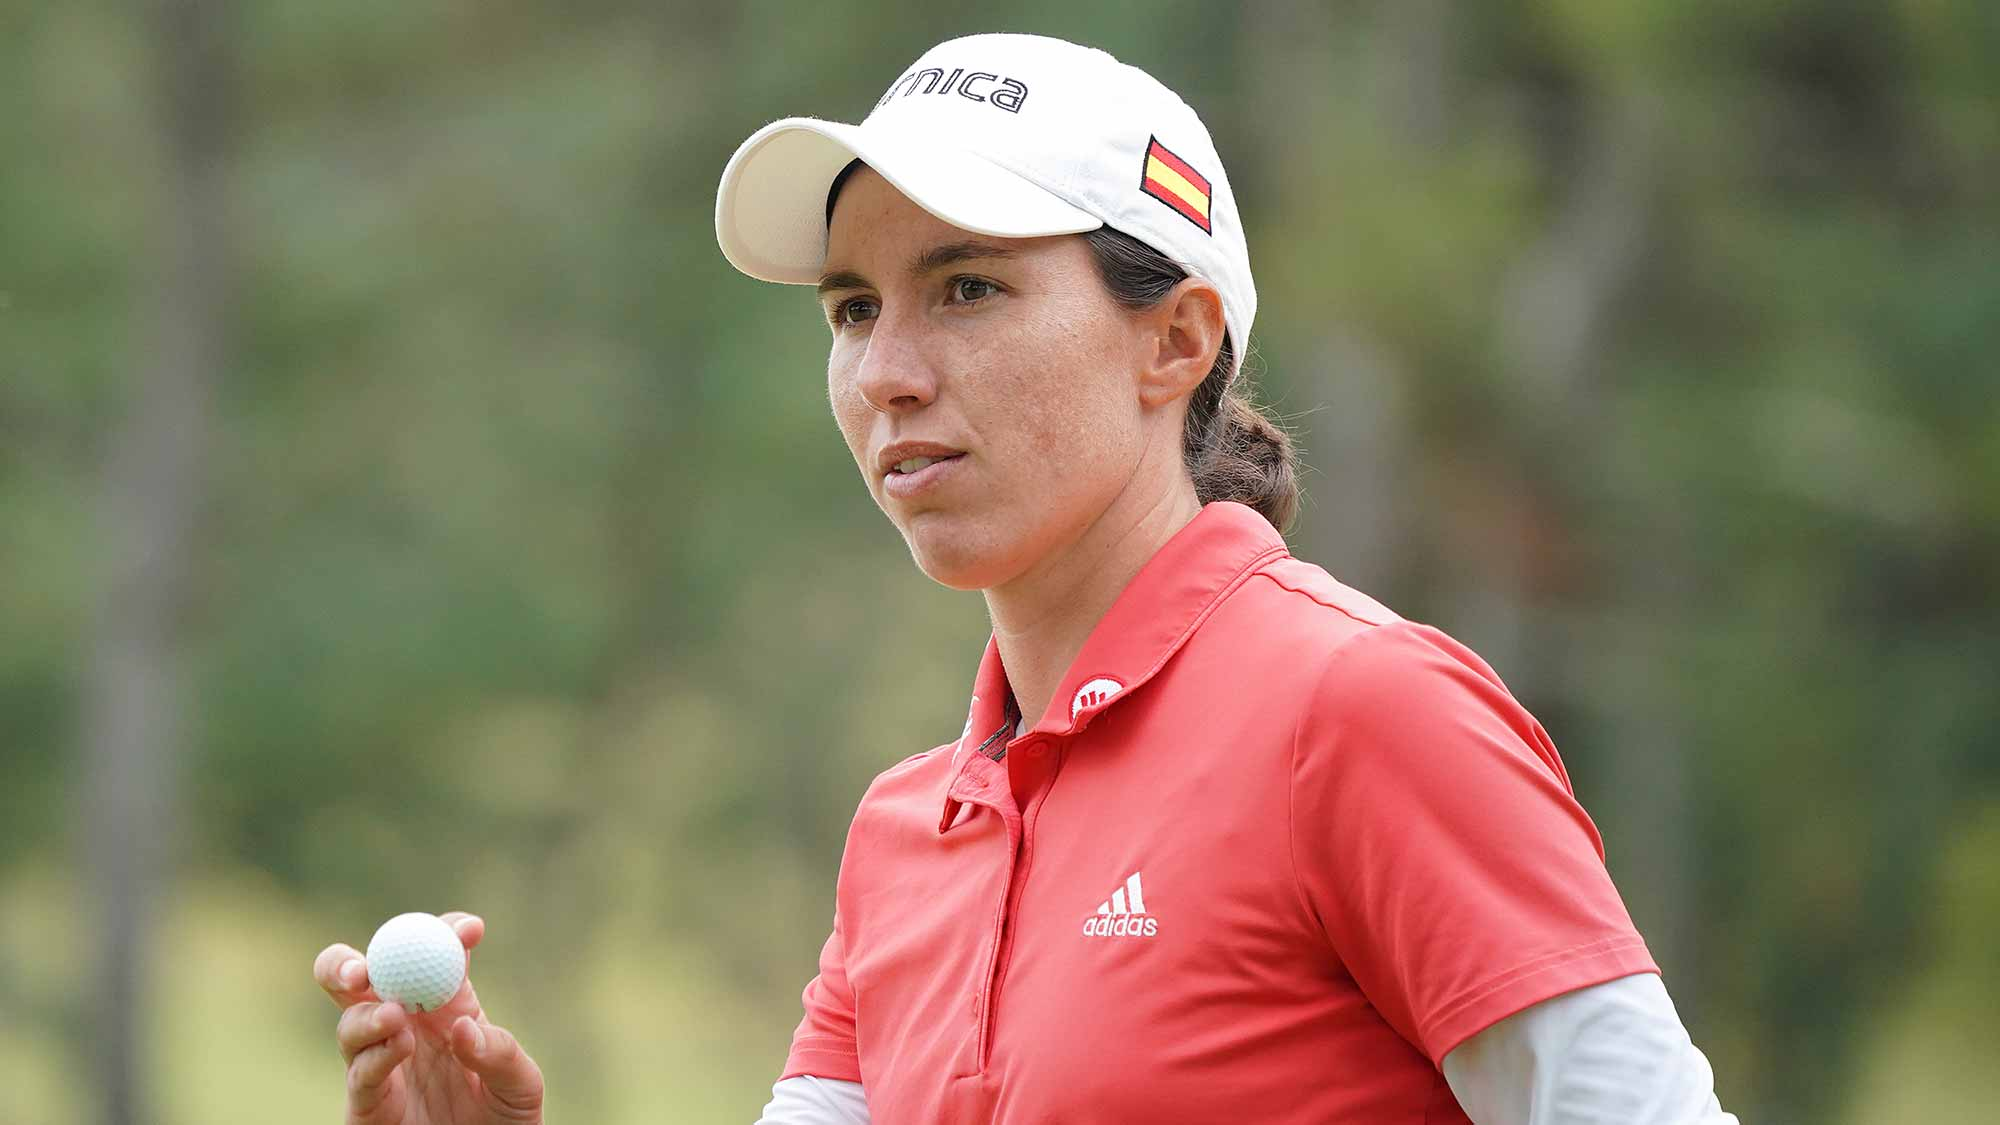 Carlota Ciganda of Spain reacts after a putt on the 13th green during the final round of the TOTO Japan Classic at Seta Golf Course on November 04, 2018 in Otsu, Shiga, Japan.